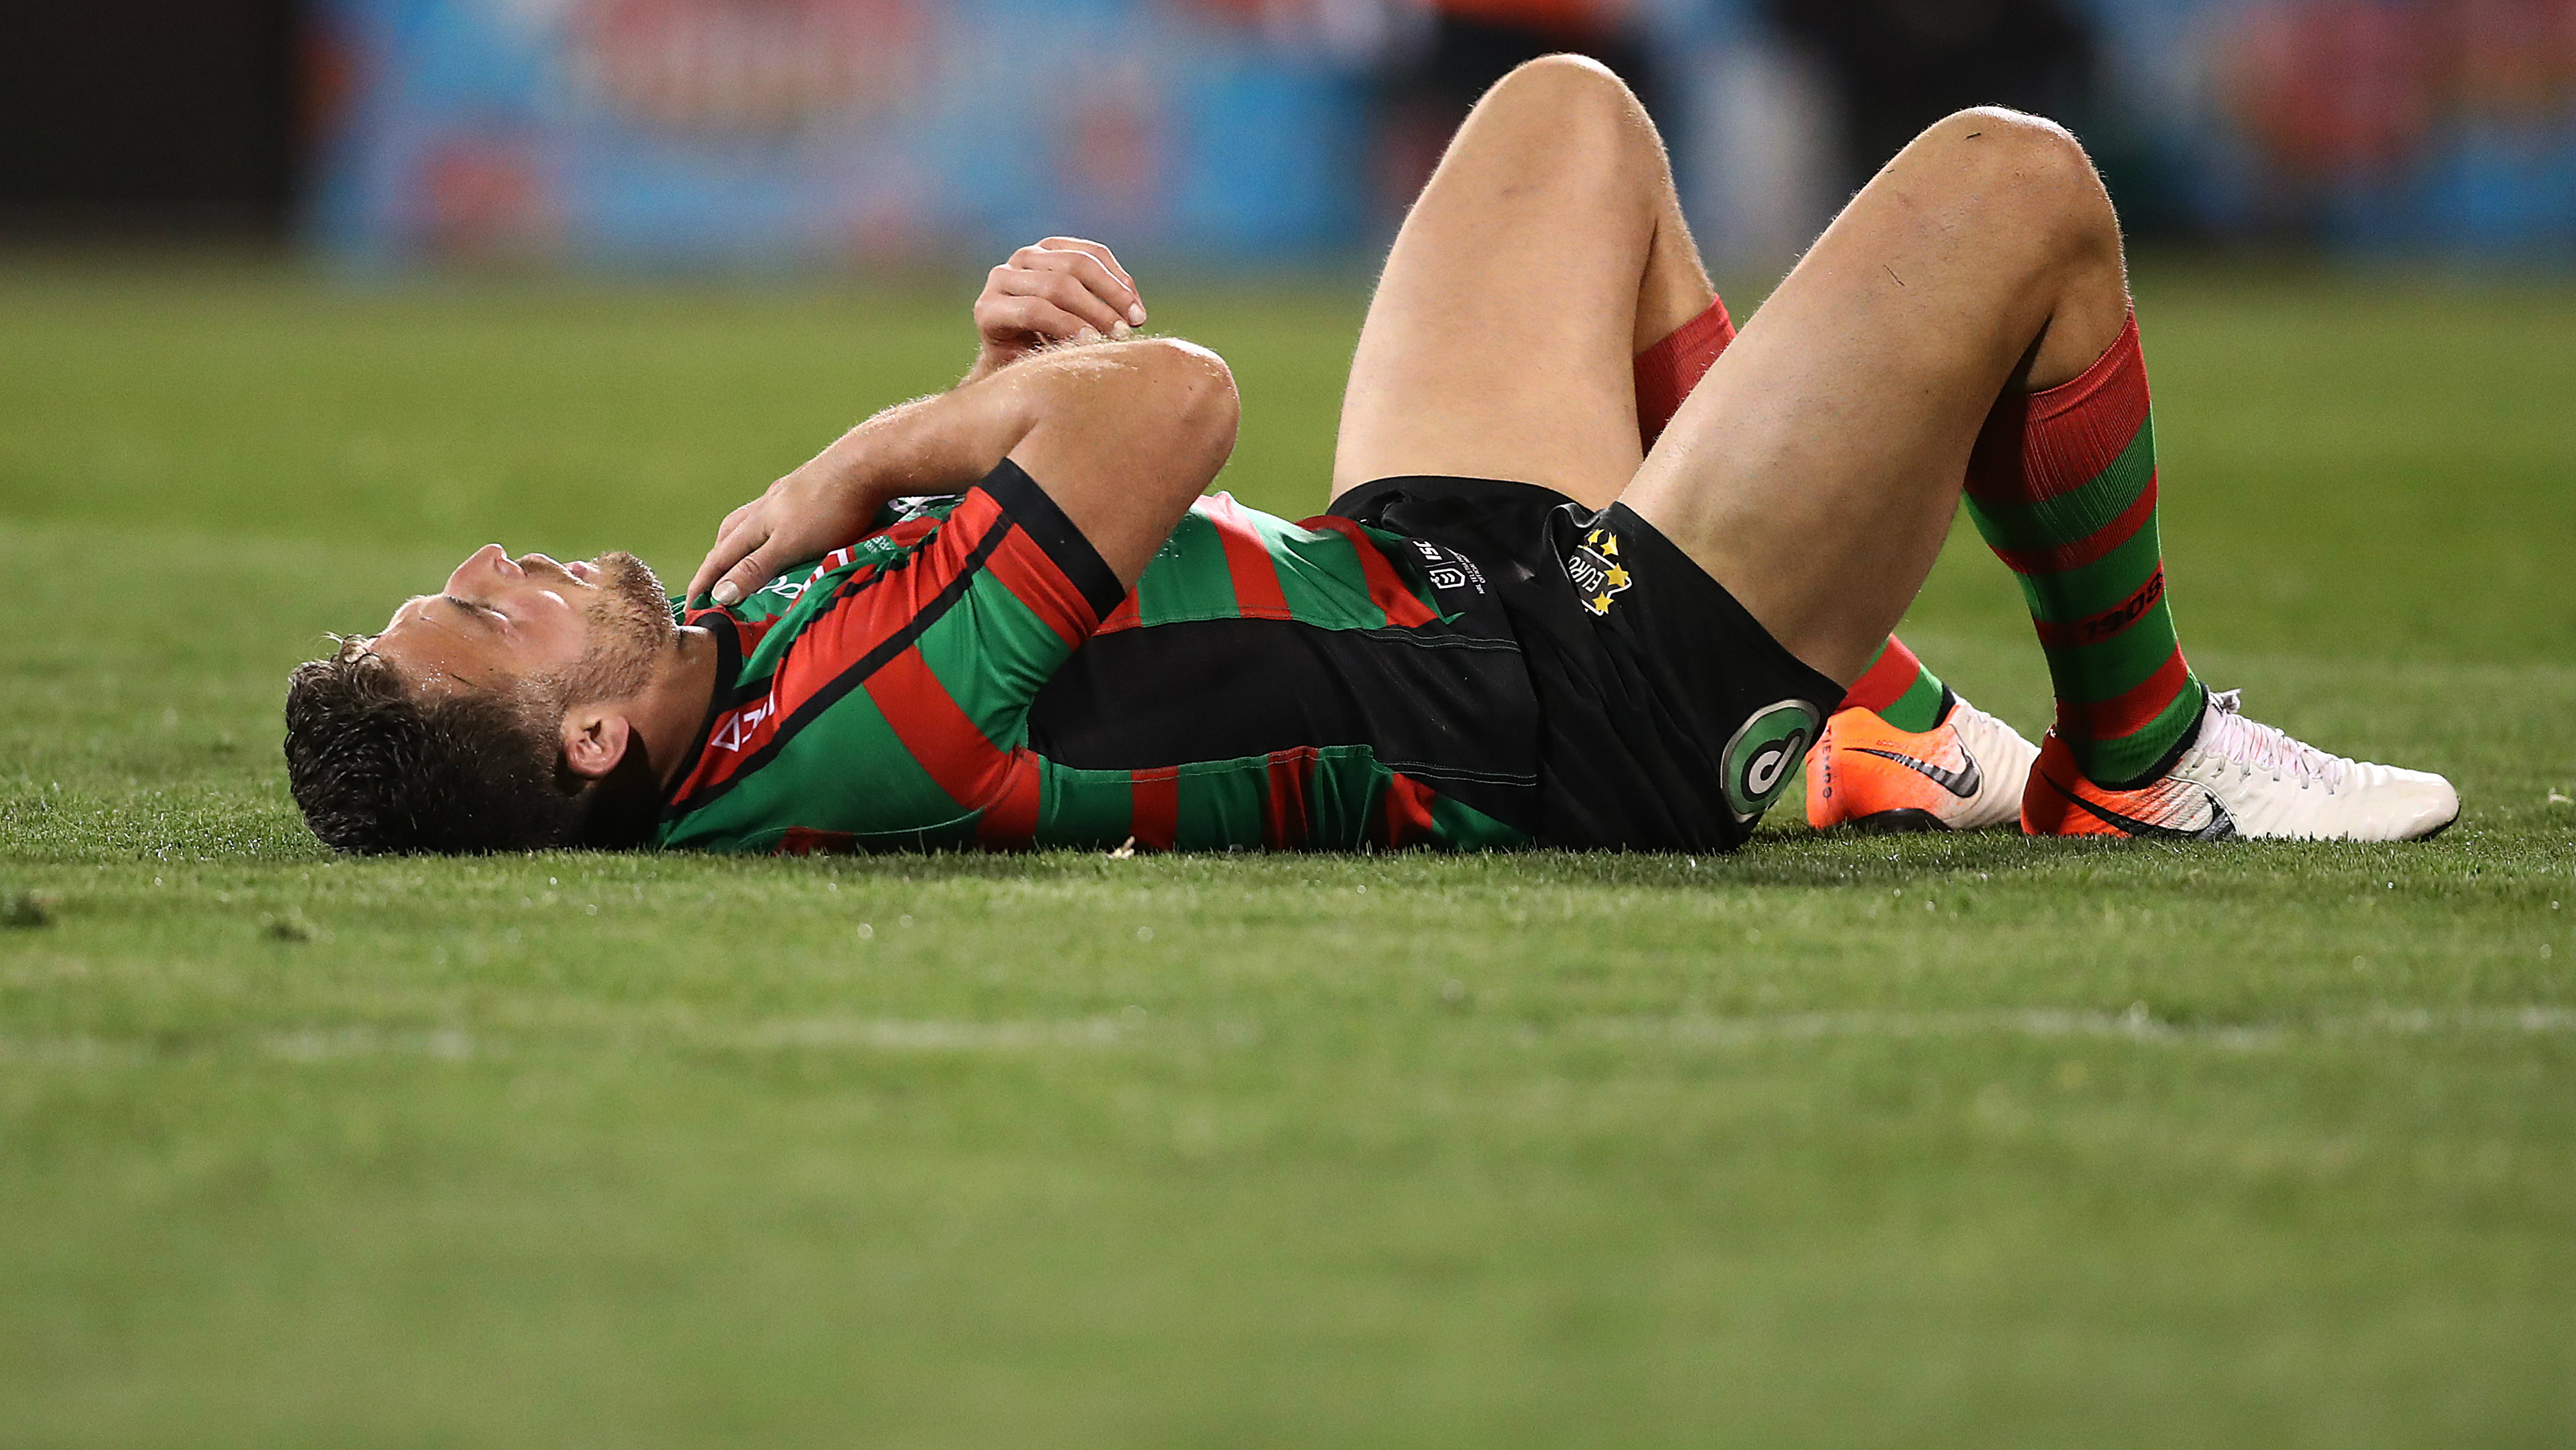 South Sydney Rabbitohs star Sam Burgess ruled out of upcoming Great Britain tour